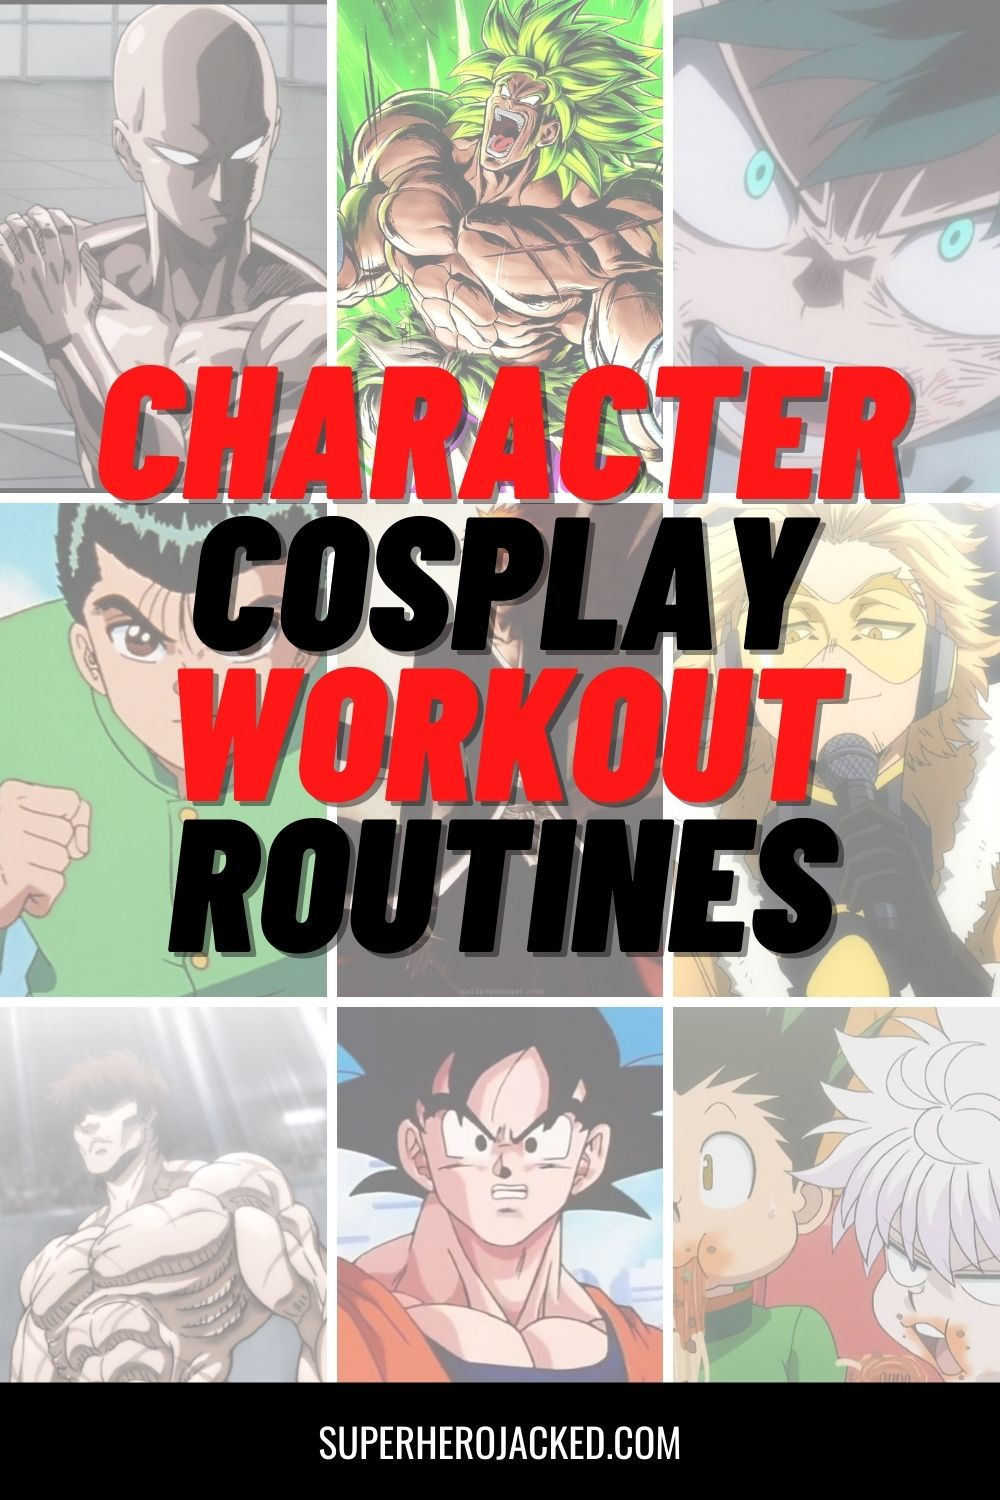 Character Cosplay Workouts